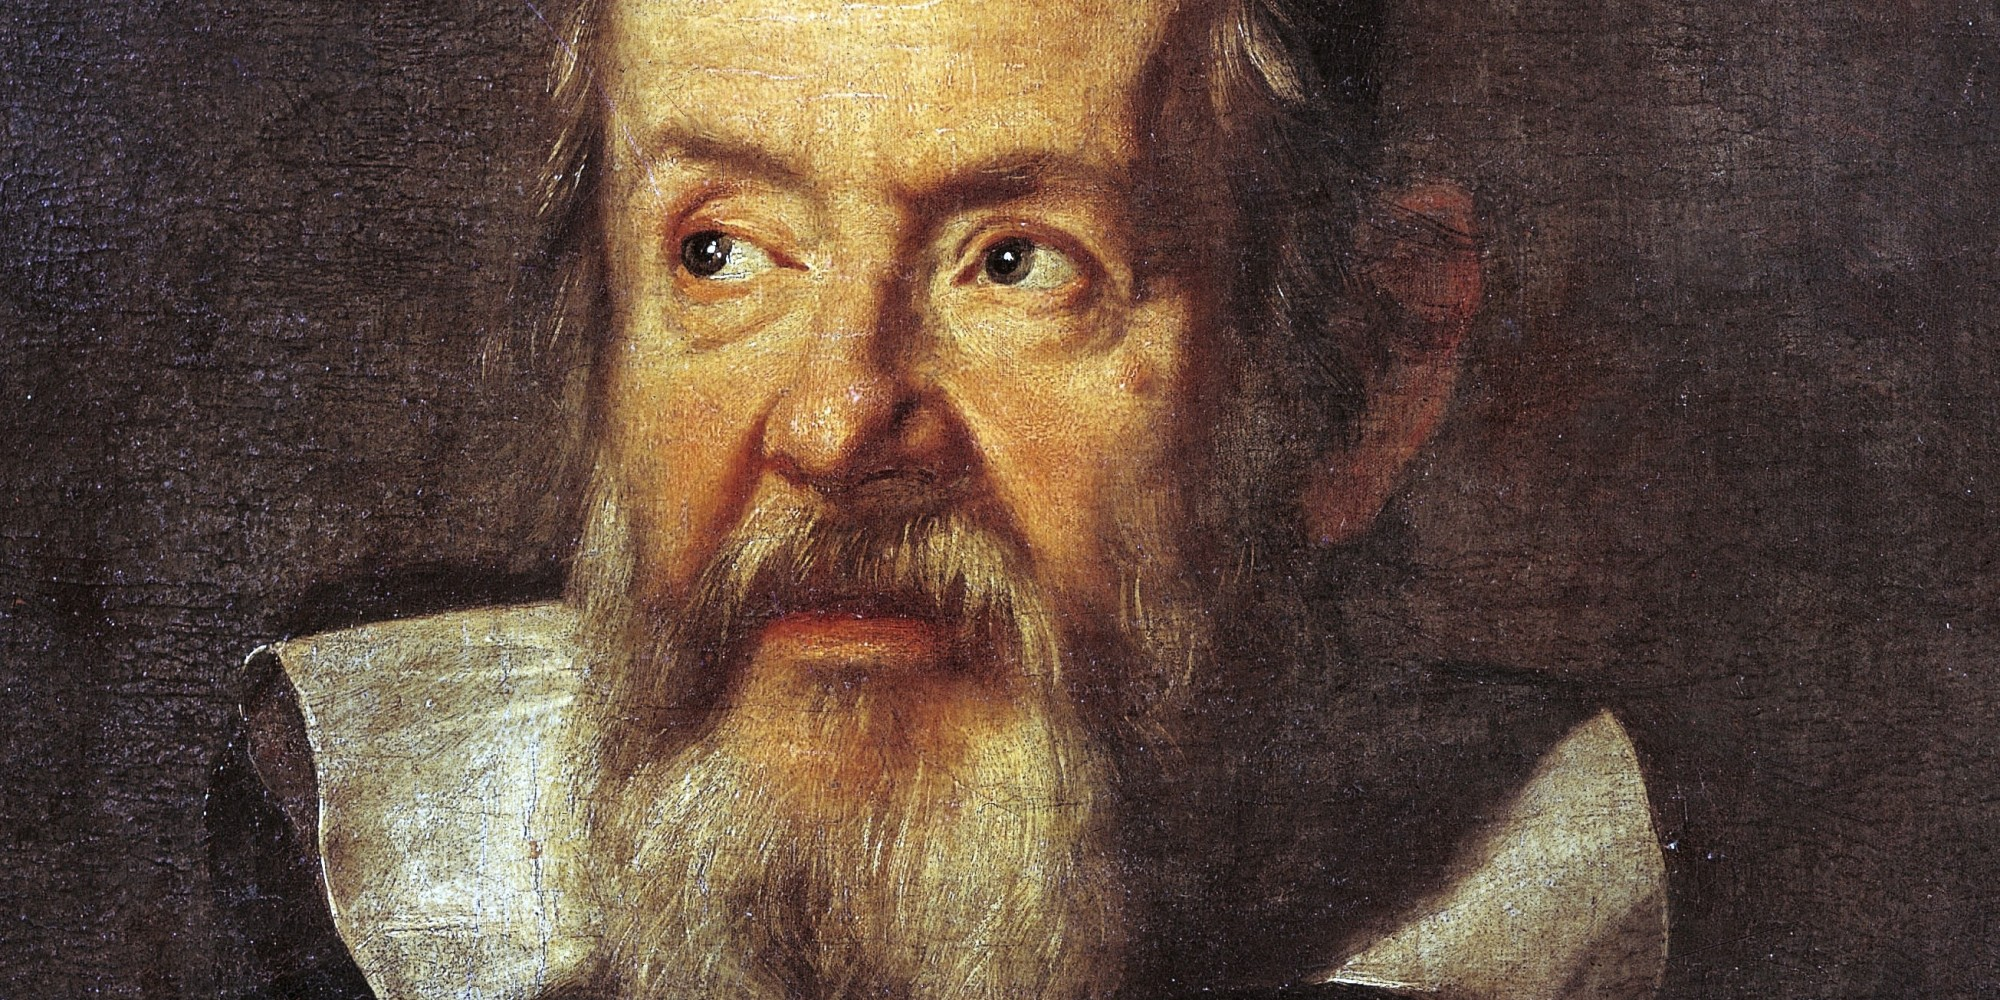 Galileo arrives in Rome to face charges of heresy